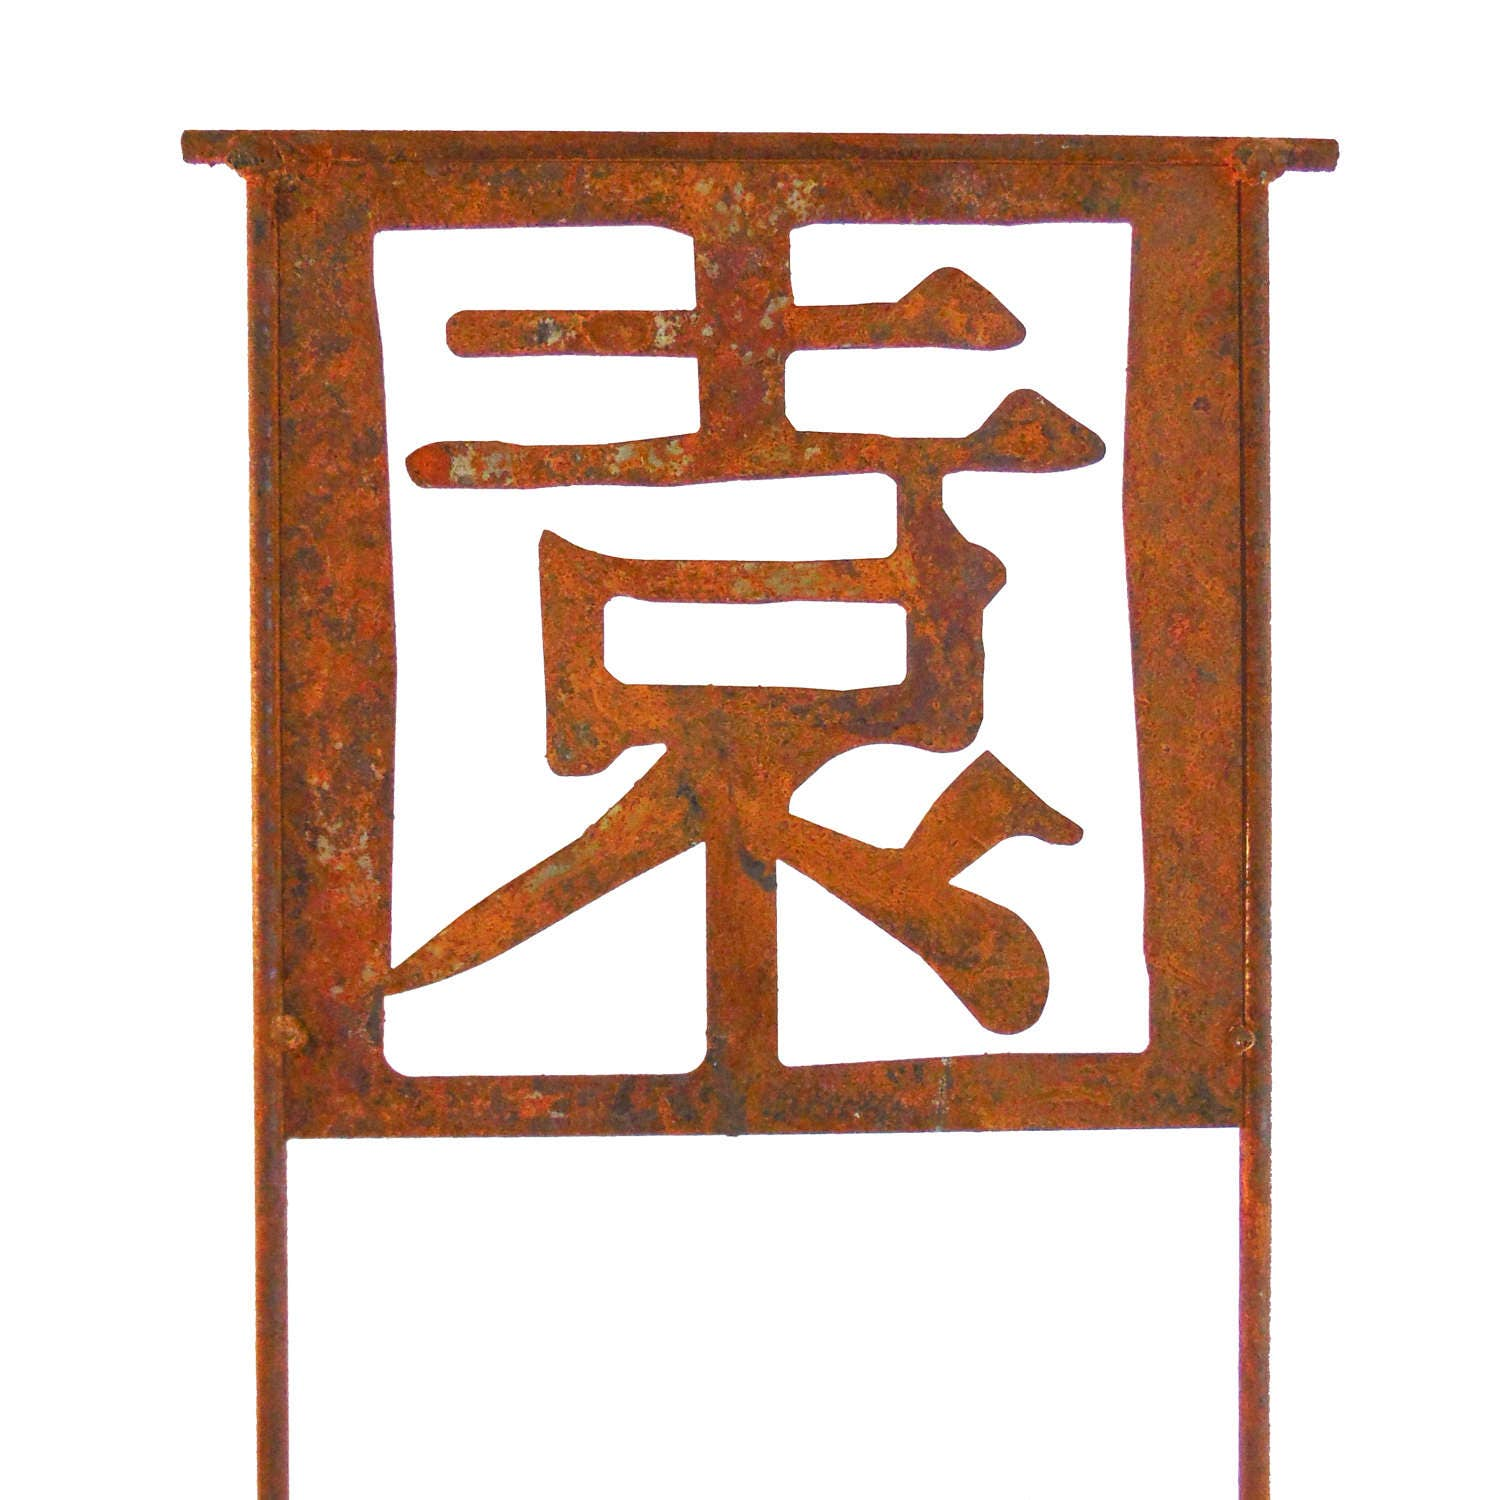 Chinese symbol for garden metal garden art home decor request a custom order and have something made just for you buycottarizona